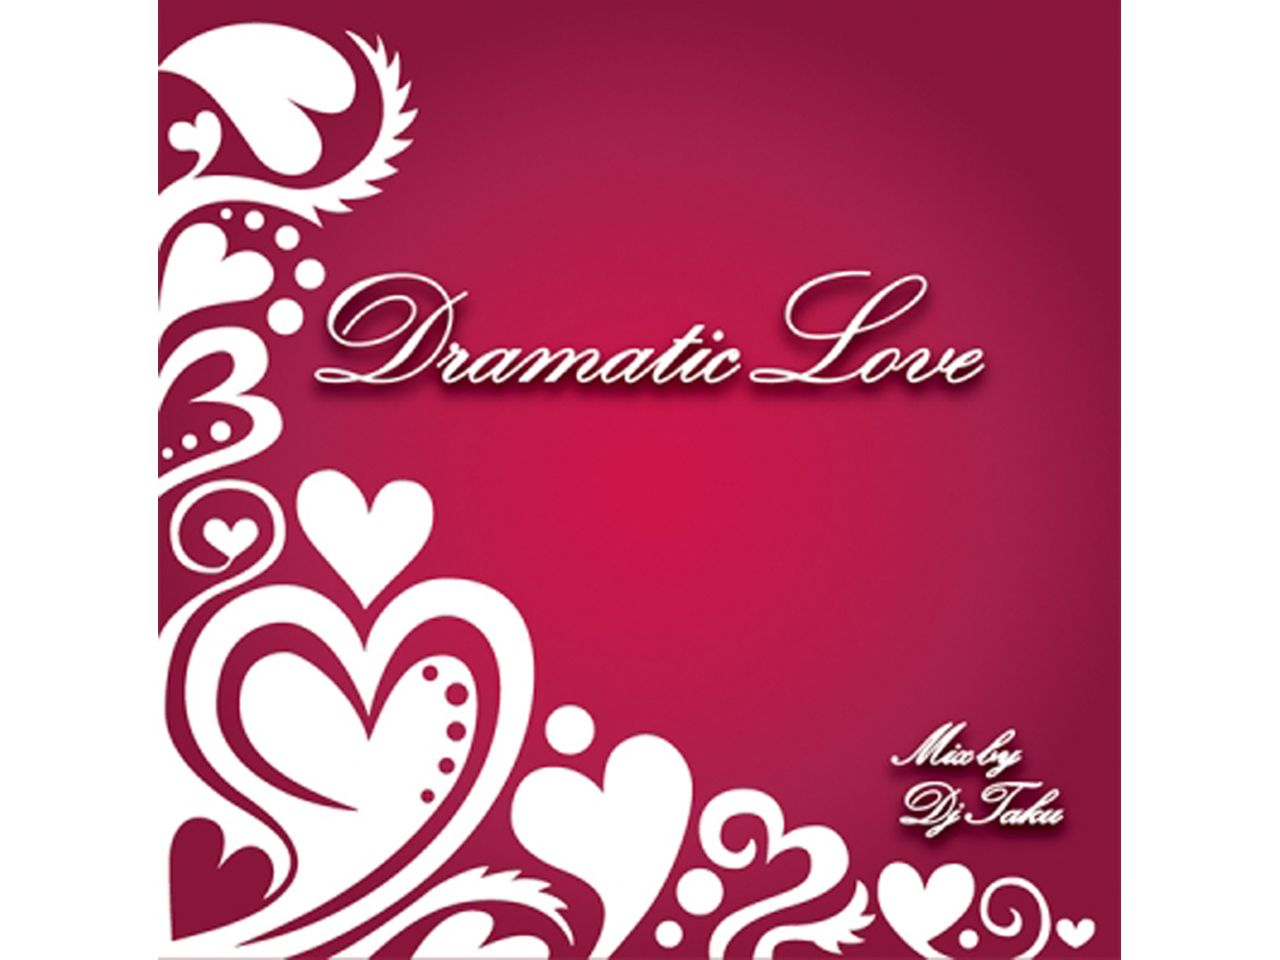 Dramatic Love Mix by DJ TAKU -EMPEROR-